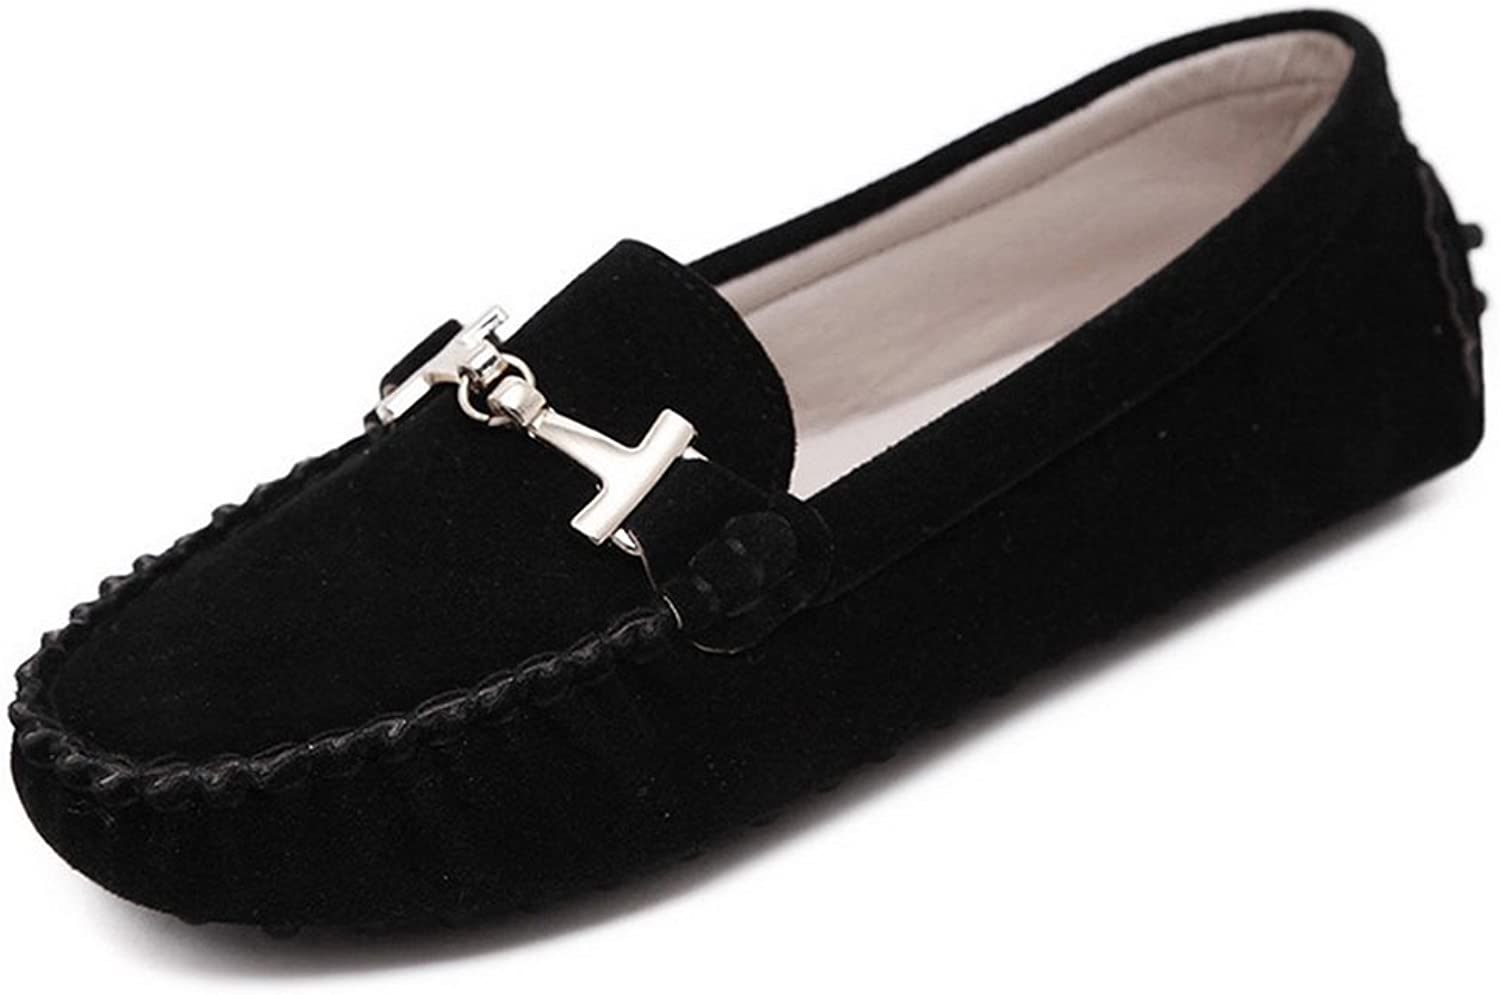 1TO9 Womens Low-Cut Uppers Round-Toe Solid Black Suede Flats shoes - 5 B(M) US